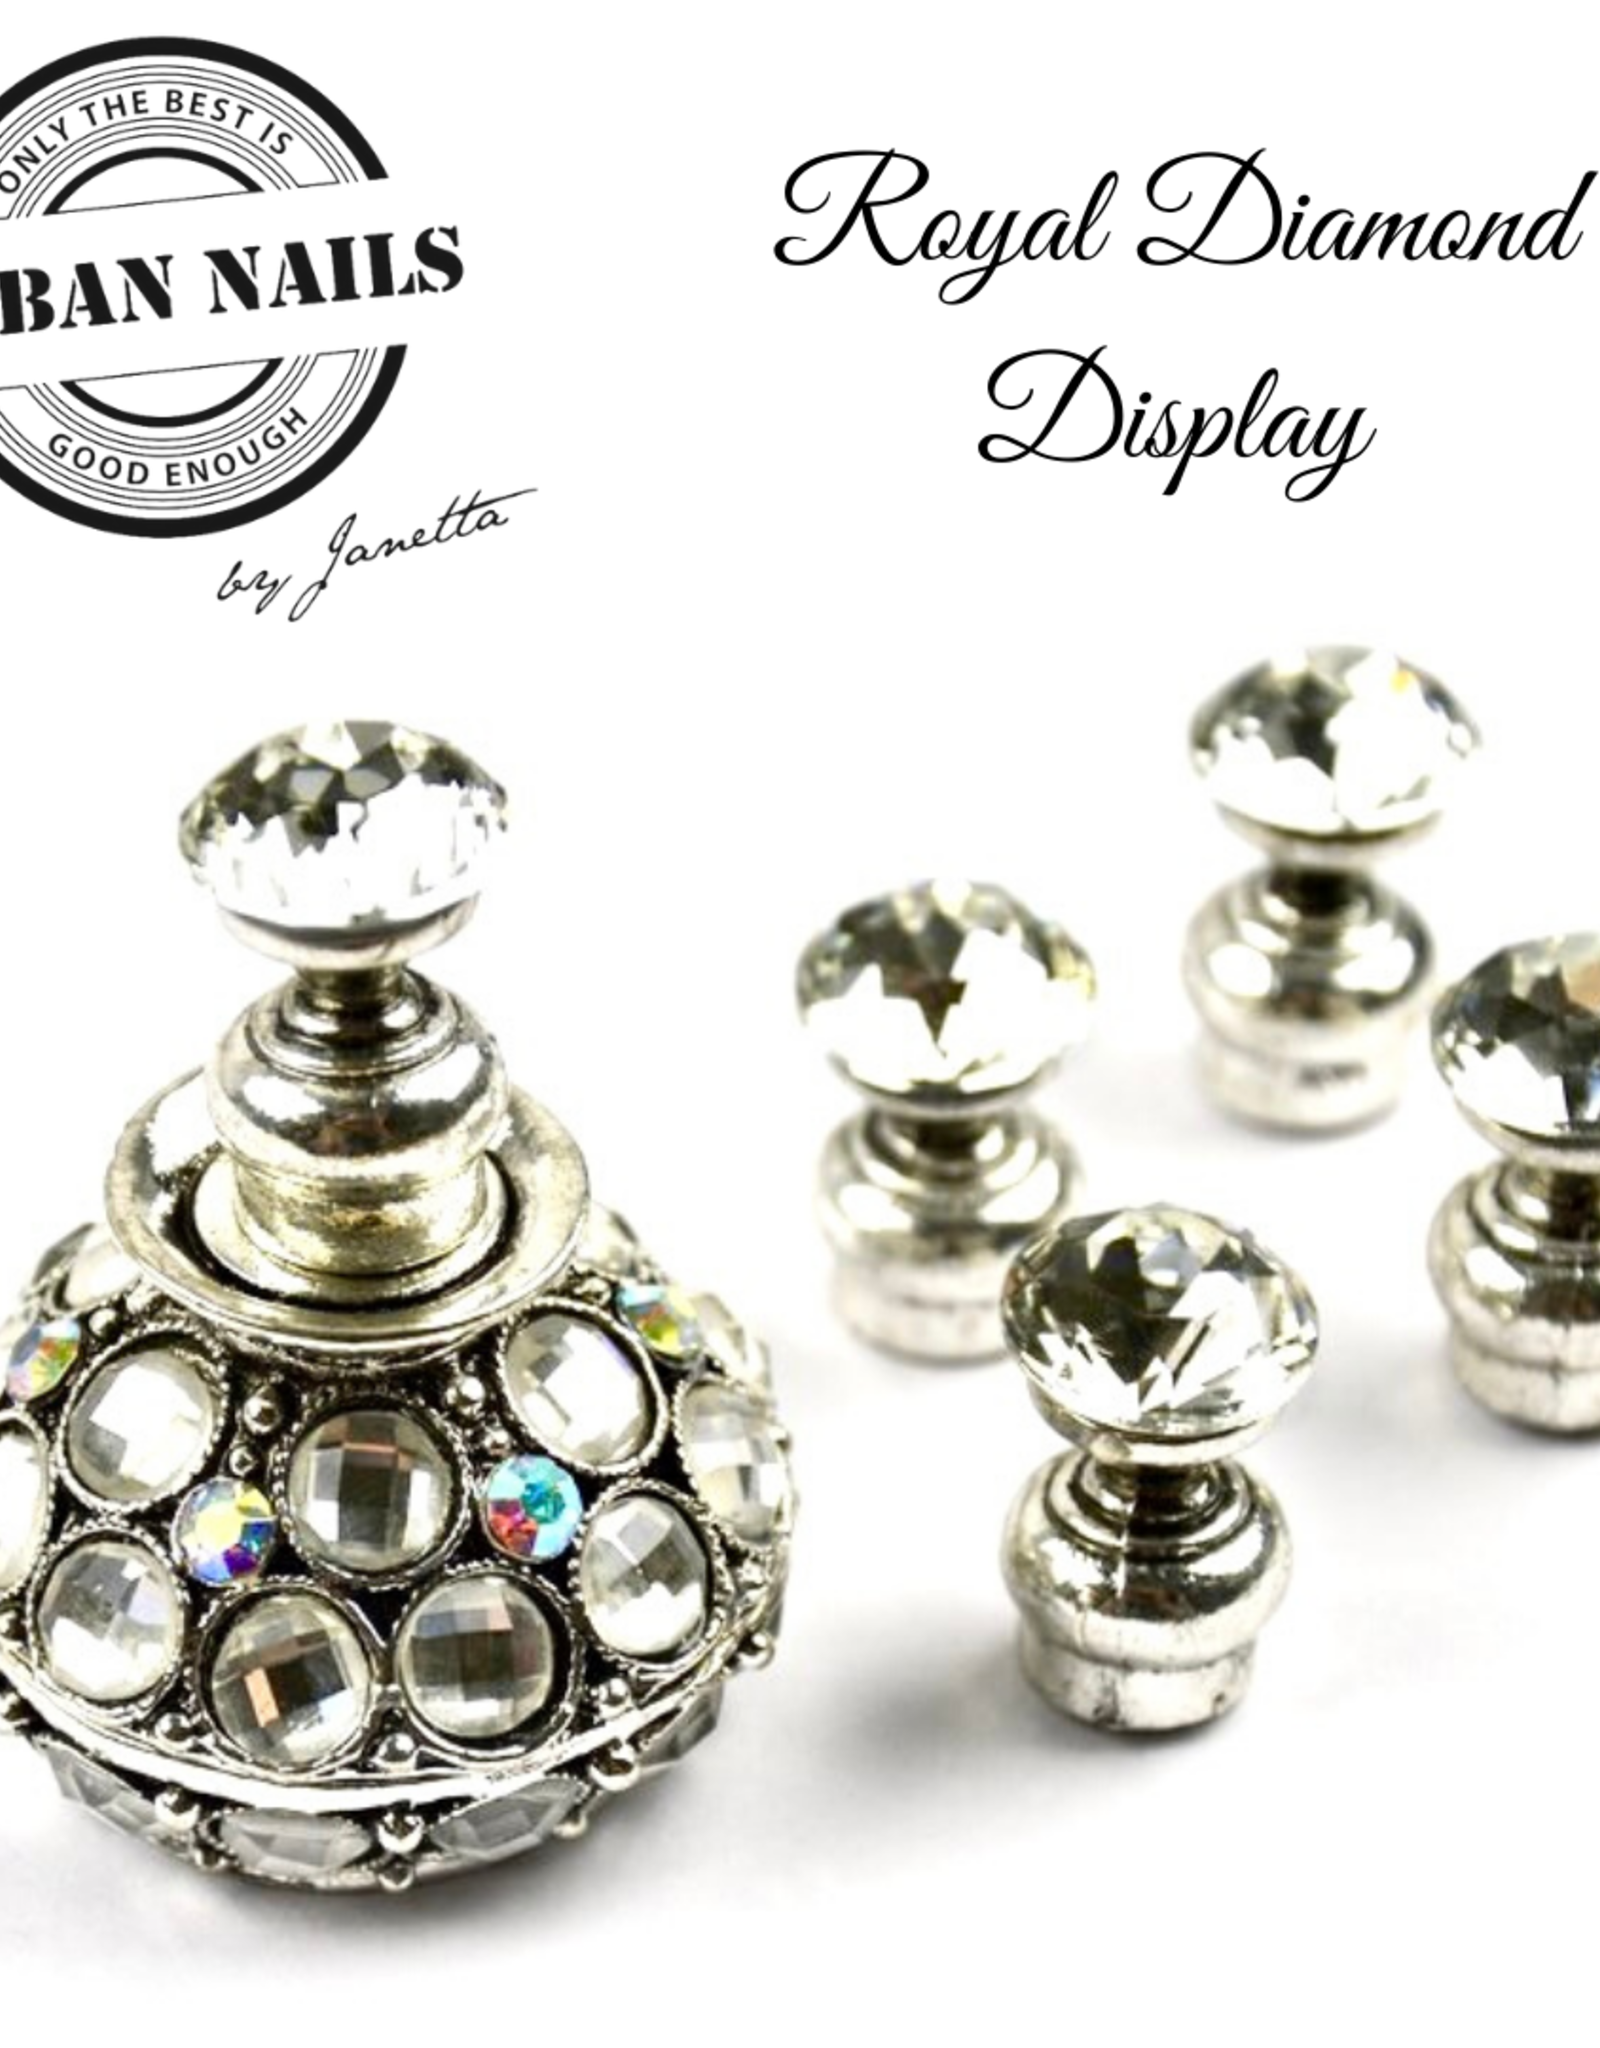 Urban Nails Diamant Tiphouder